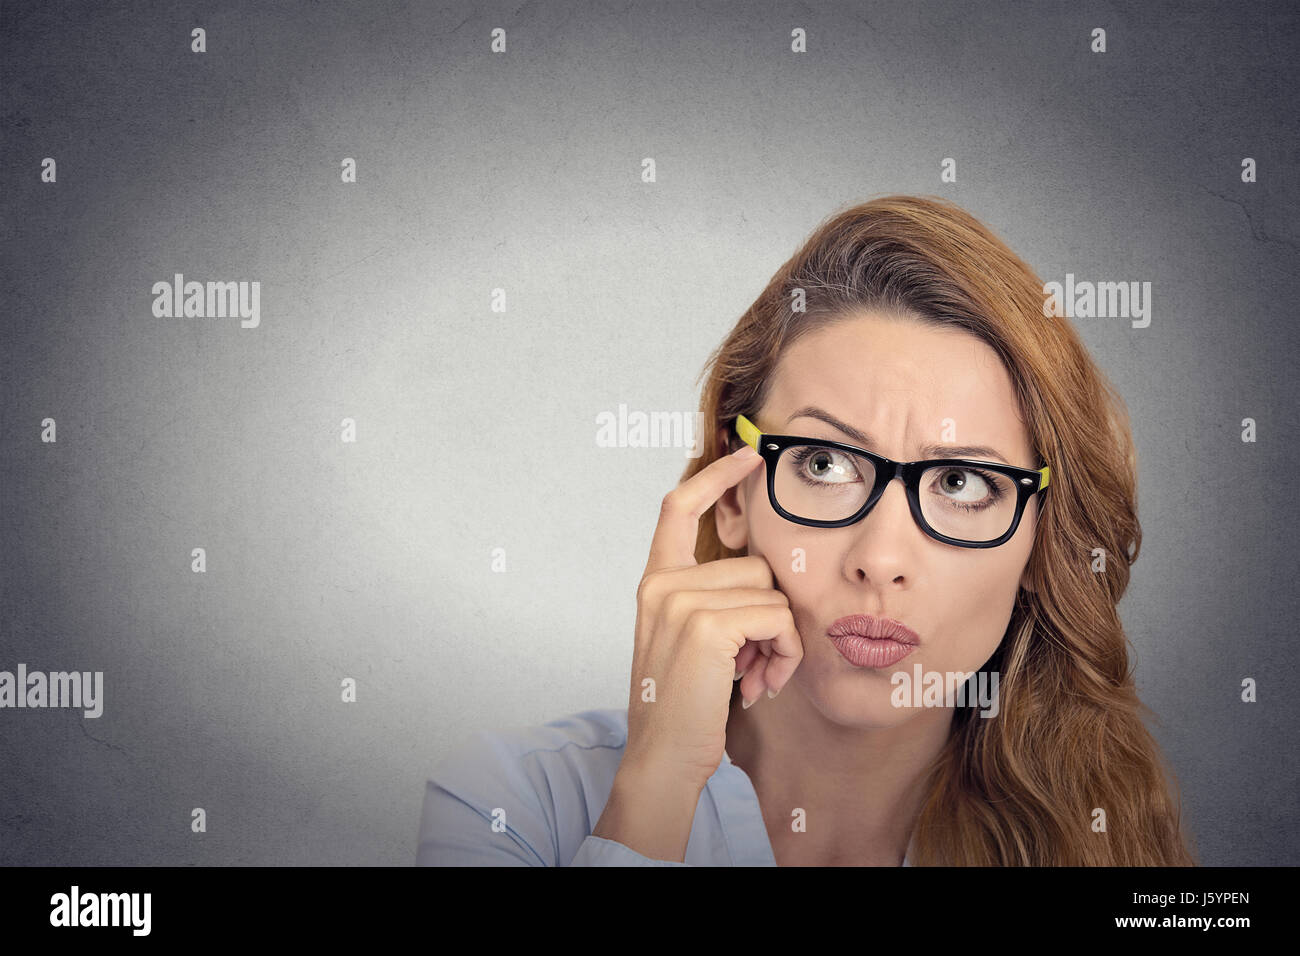 Kann mich nicht erinnern. Kopfschuss nachdenkliche junge Frau mit Brille schauen verwirrt isoliert graue Wand Background. Stockbild